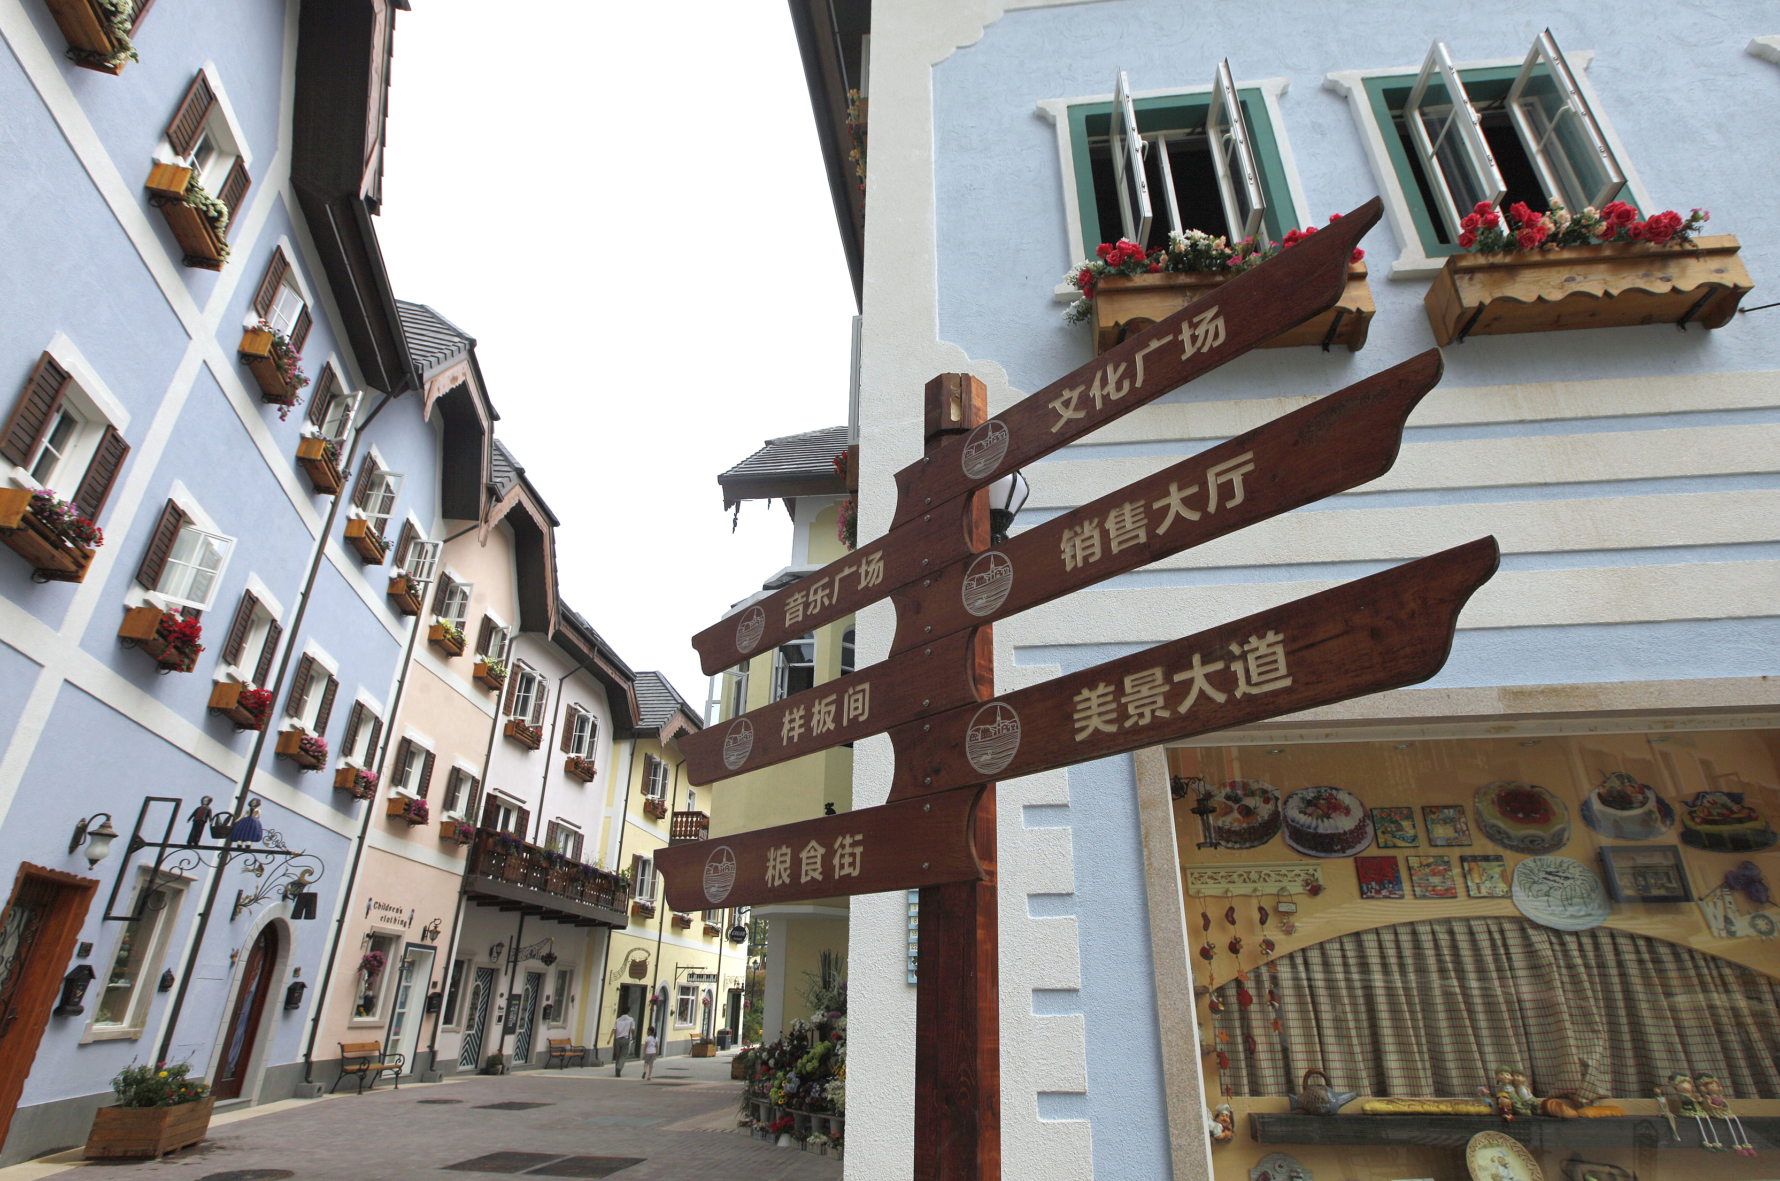 A Chinese road sign is seen at the replica of Austria's UNESCO heritage site, Hallstatt village, in China's southern city of Huizhou in Guangdong province June 1, 2012. Metals and mining company China Minmetals Corporation spent $940 million to build this controversial site and hopes to attract both tourists and property investors alike, according to local newspaper reports. REUTERS/Tyrone Siu (CHINA - Tags: BUSINESS SOCIETY TRAVEL)